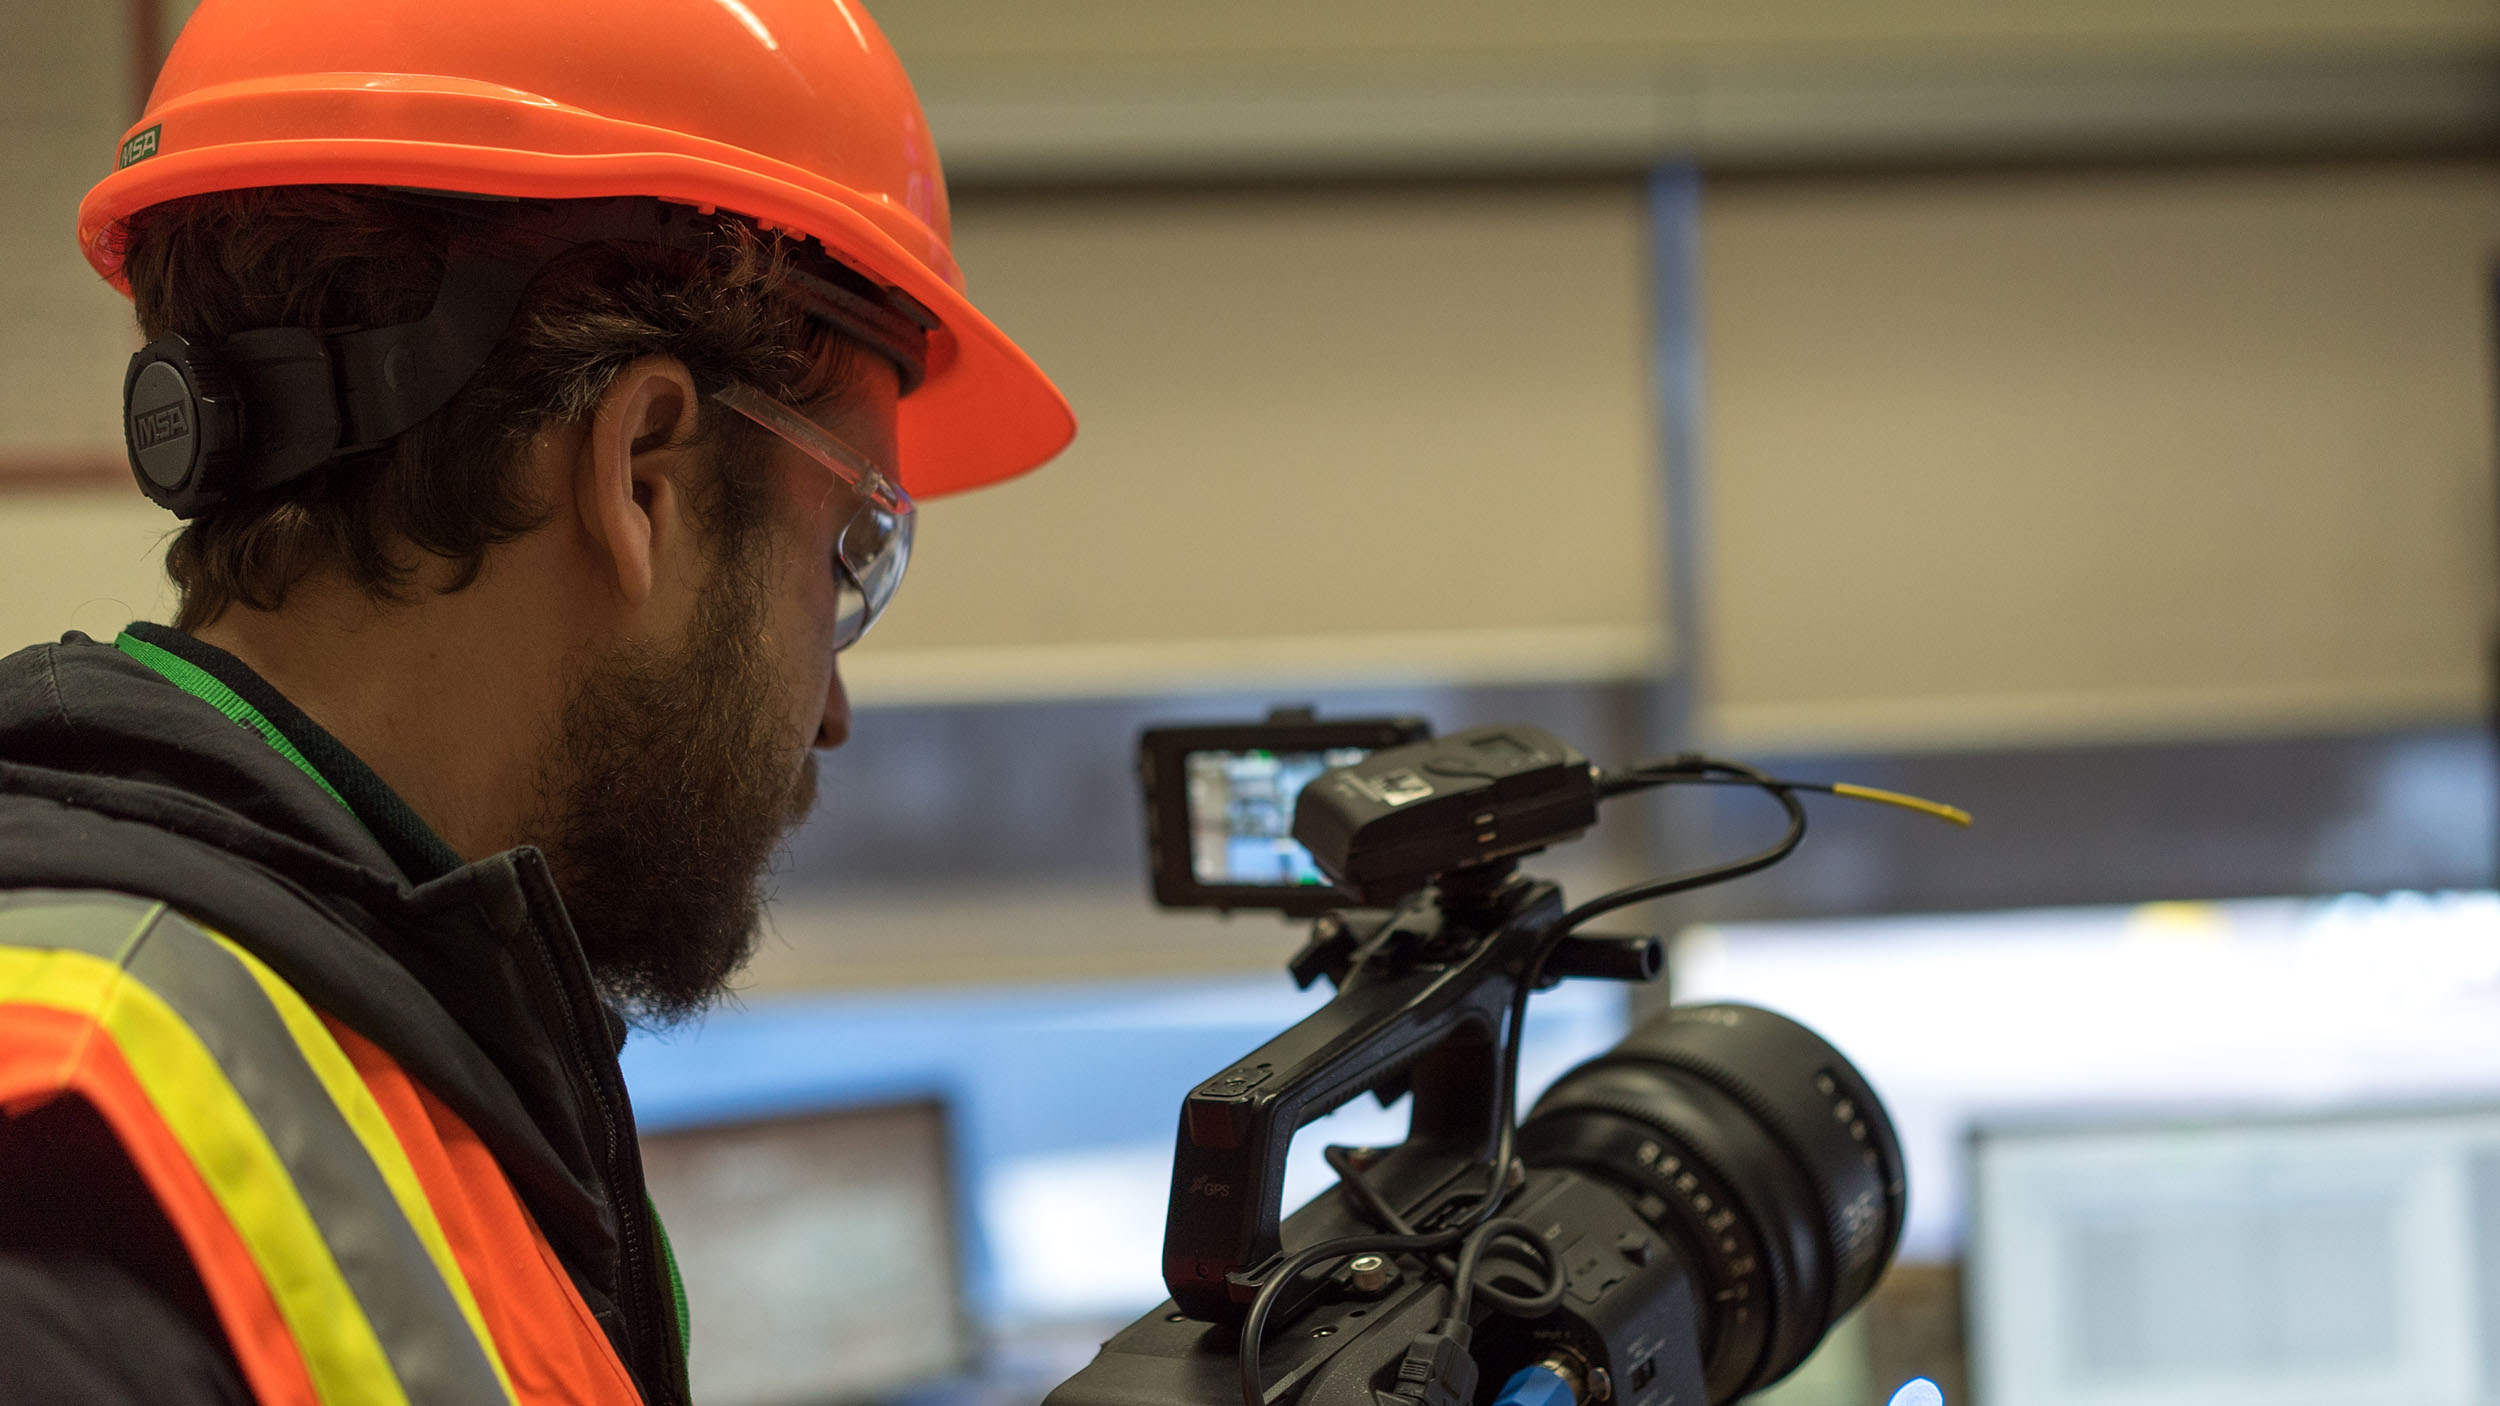 Video production at Edmonton cement facility